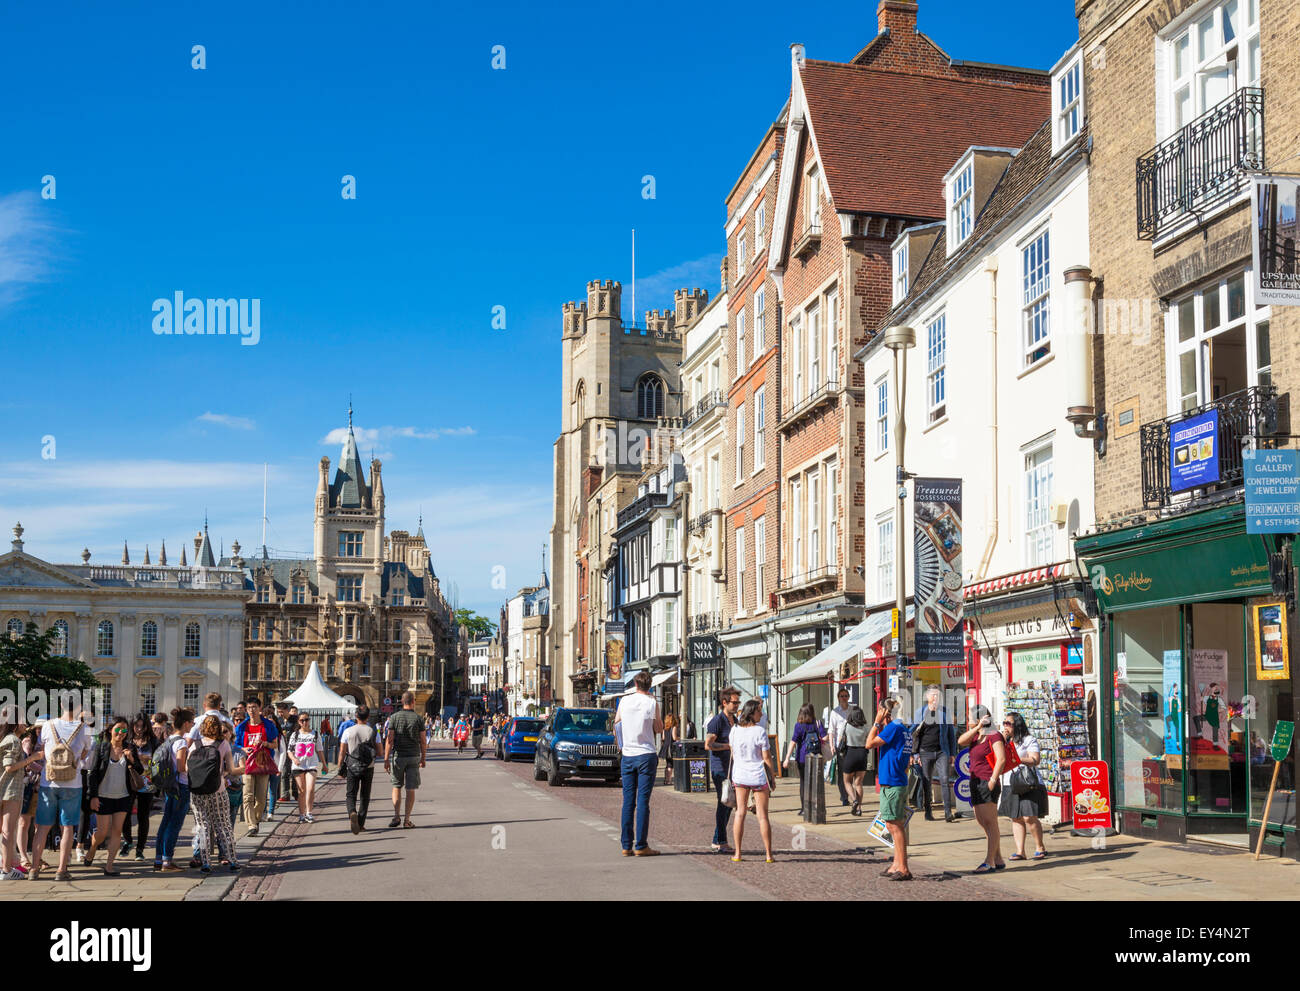 Kings Parade Cambridge City Centre Cambridge Cambridgeshire England UK GB EU Europe - Stock Image